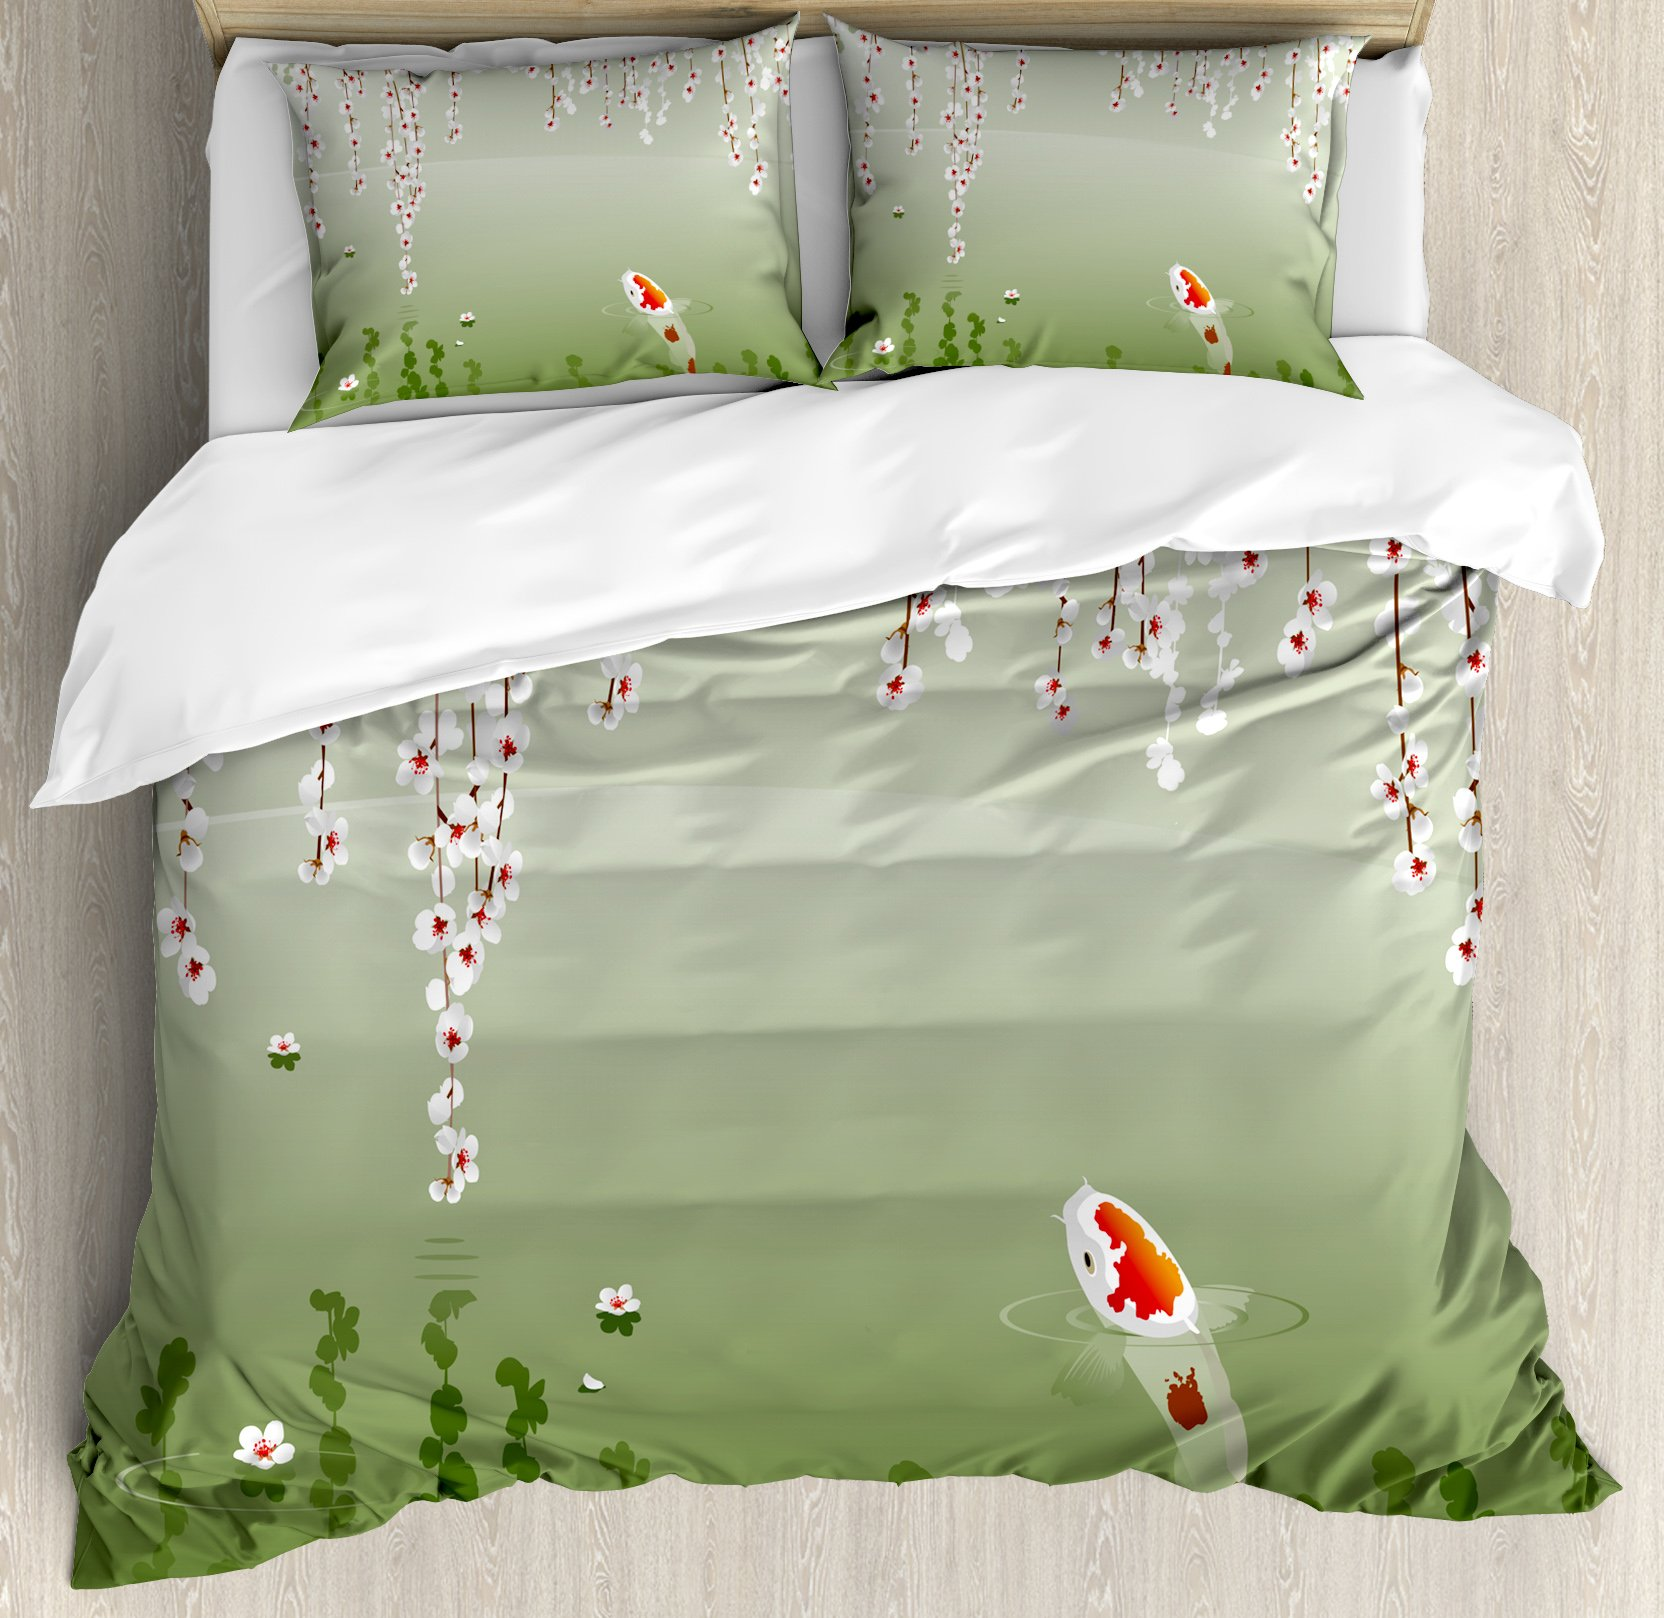 Lunarable Koi Fish Duvet Cover Set Queen Size, Japanese Koi Fish Painting Style Hanging Cherry Flowers Floating Leaves, Decorative 3 Piece Bedding Set with 2 Pillow Shams, Green Orange White